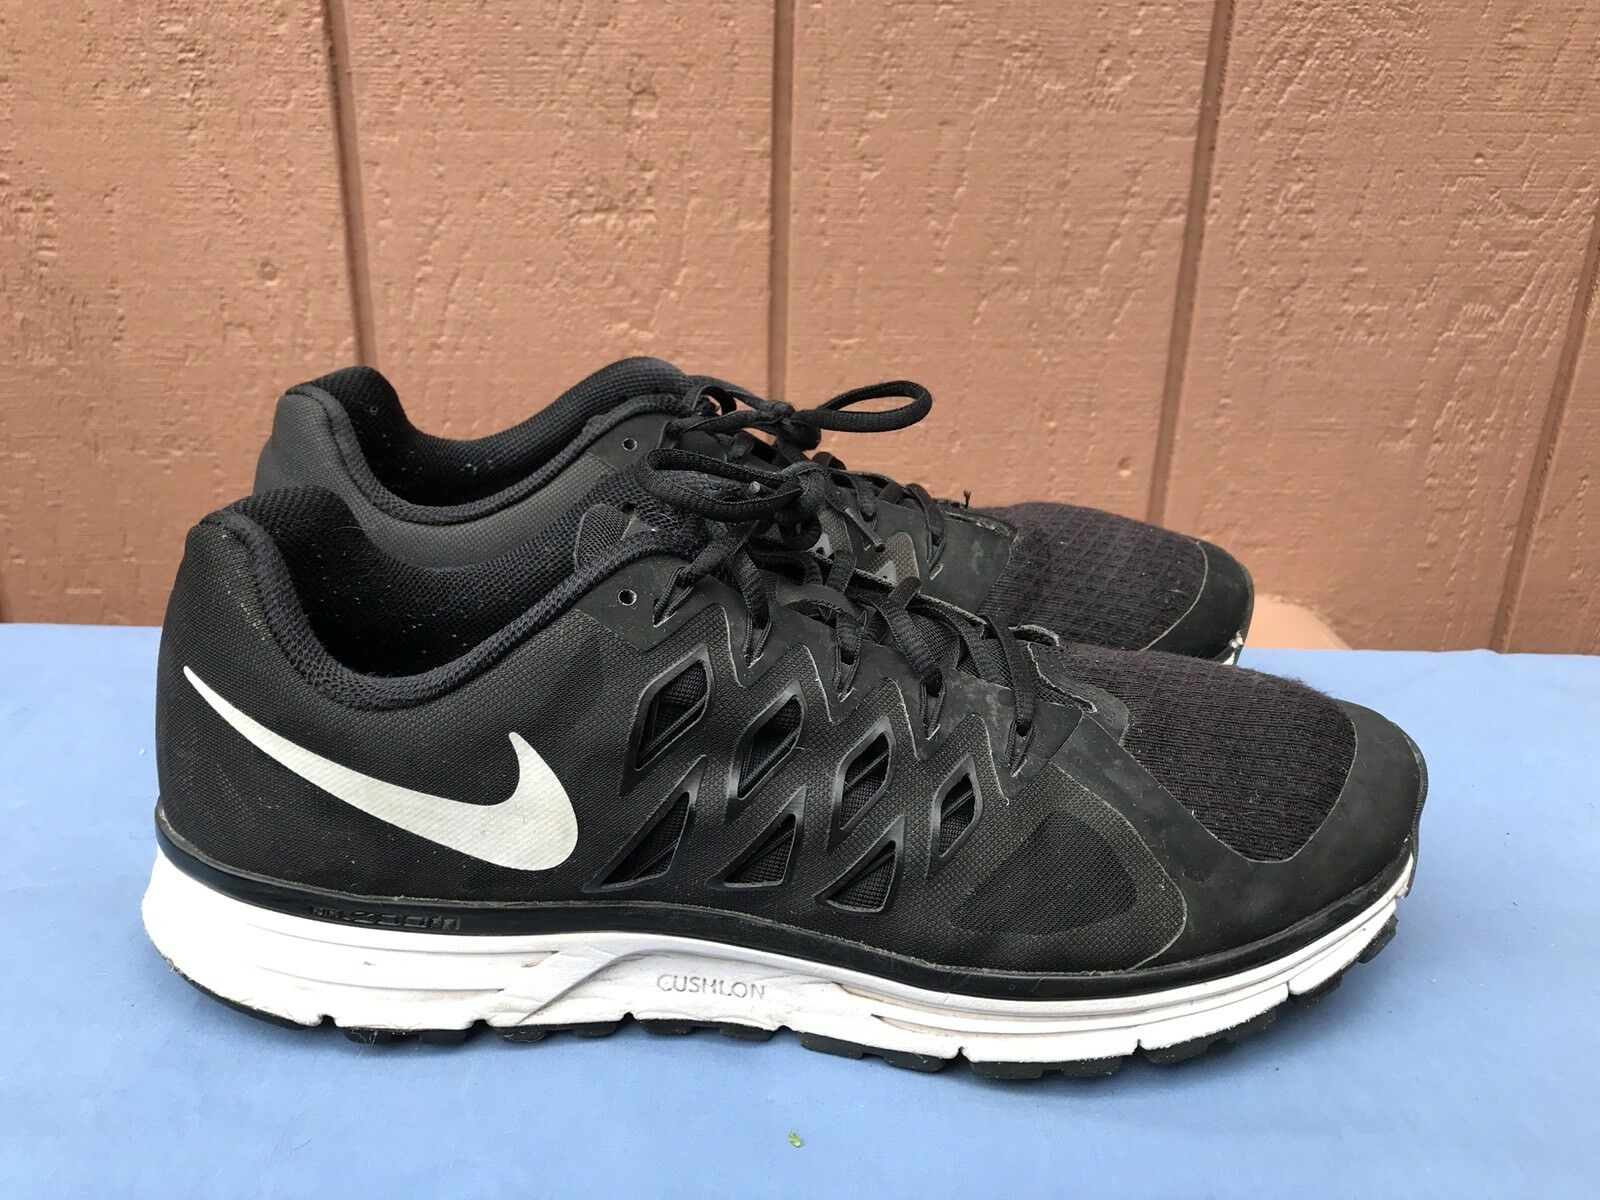 Nike Zoom Vomero 9 Men's Comfortable Comfortable and good-looking